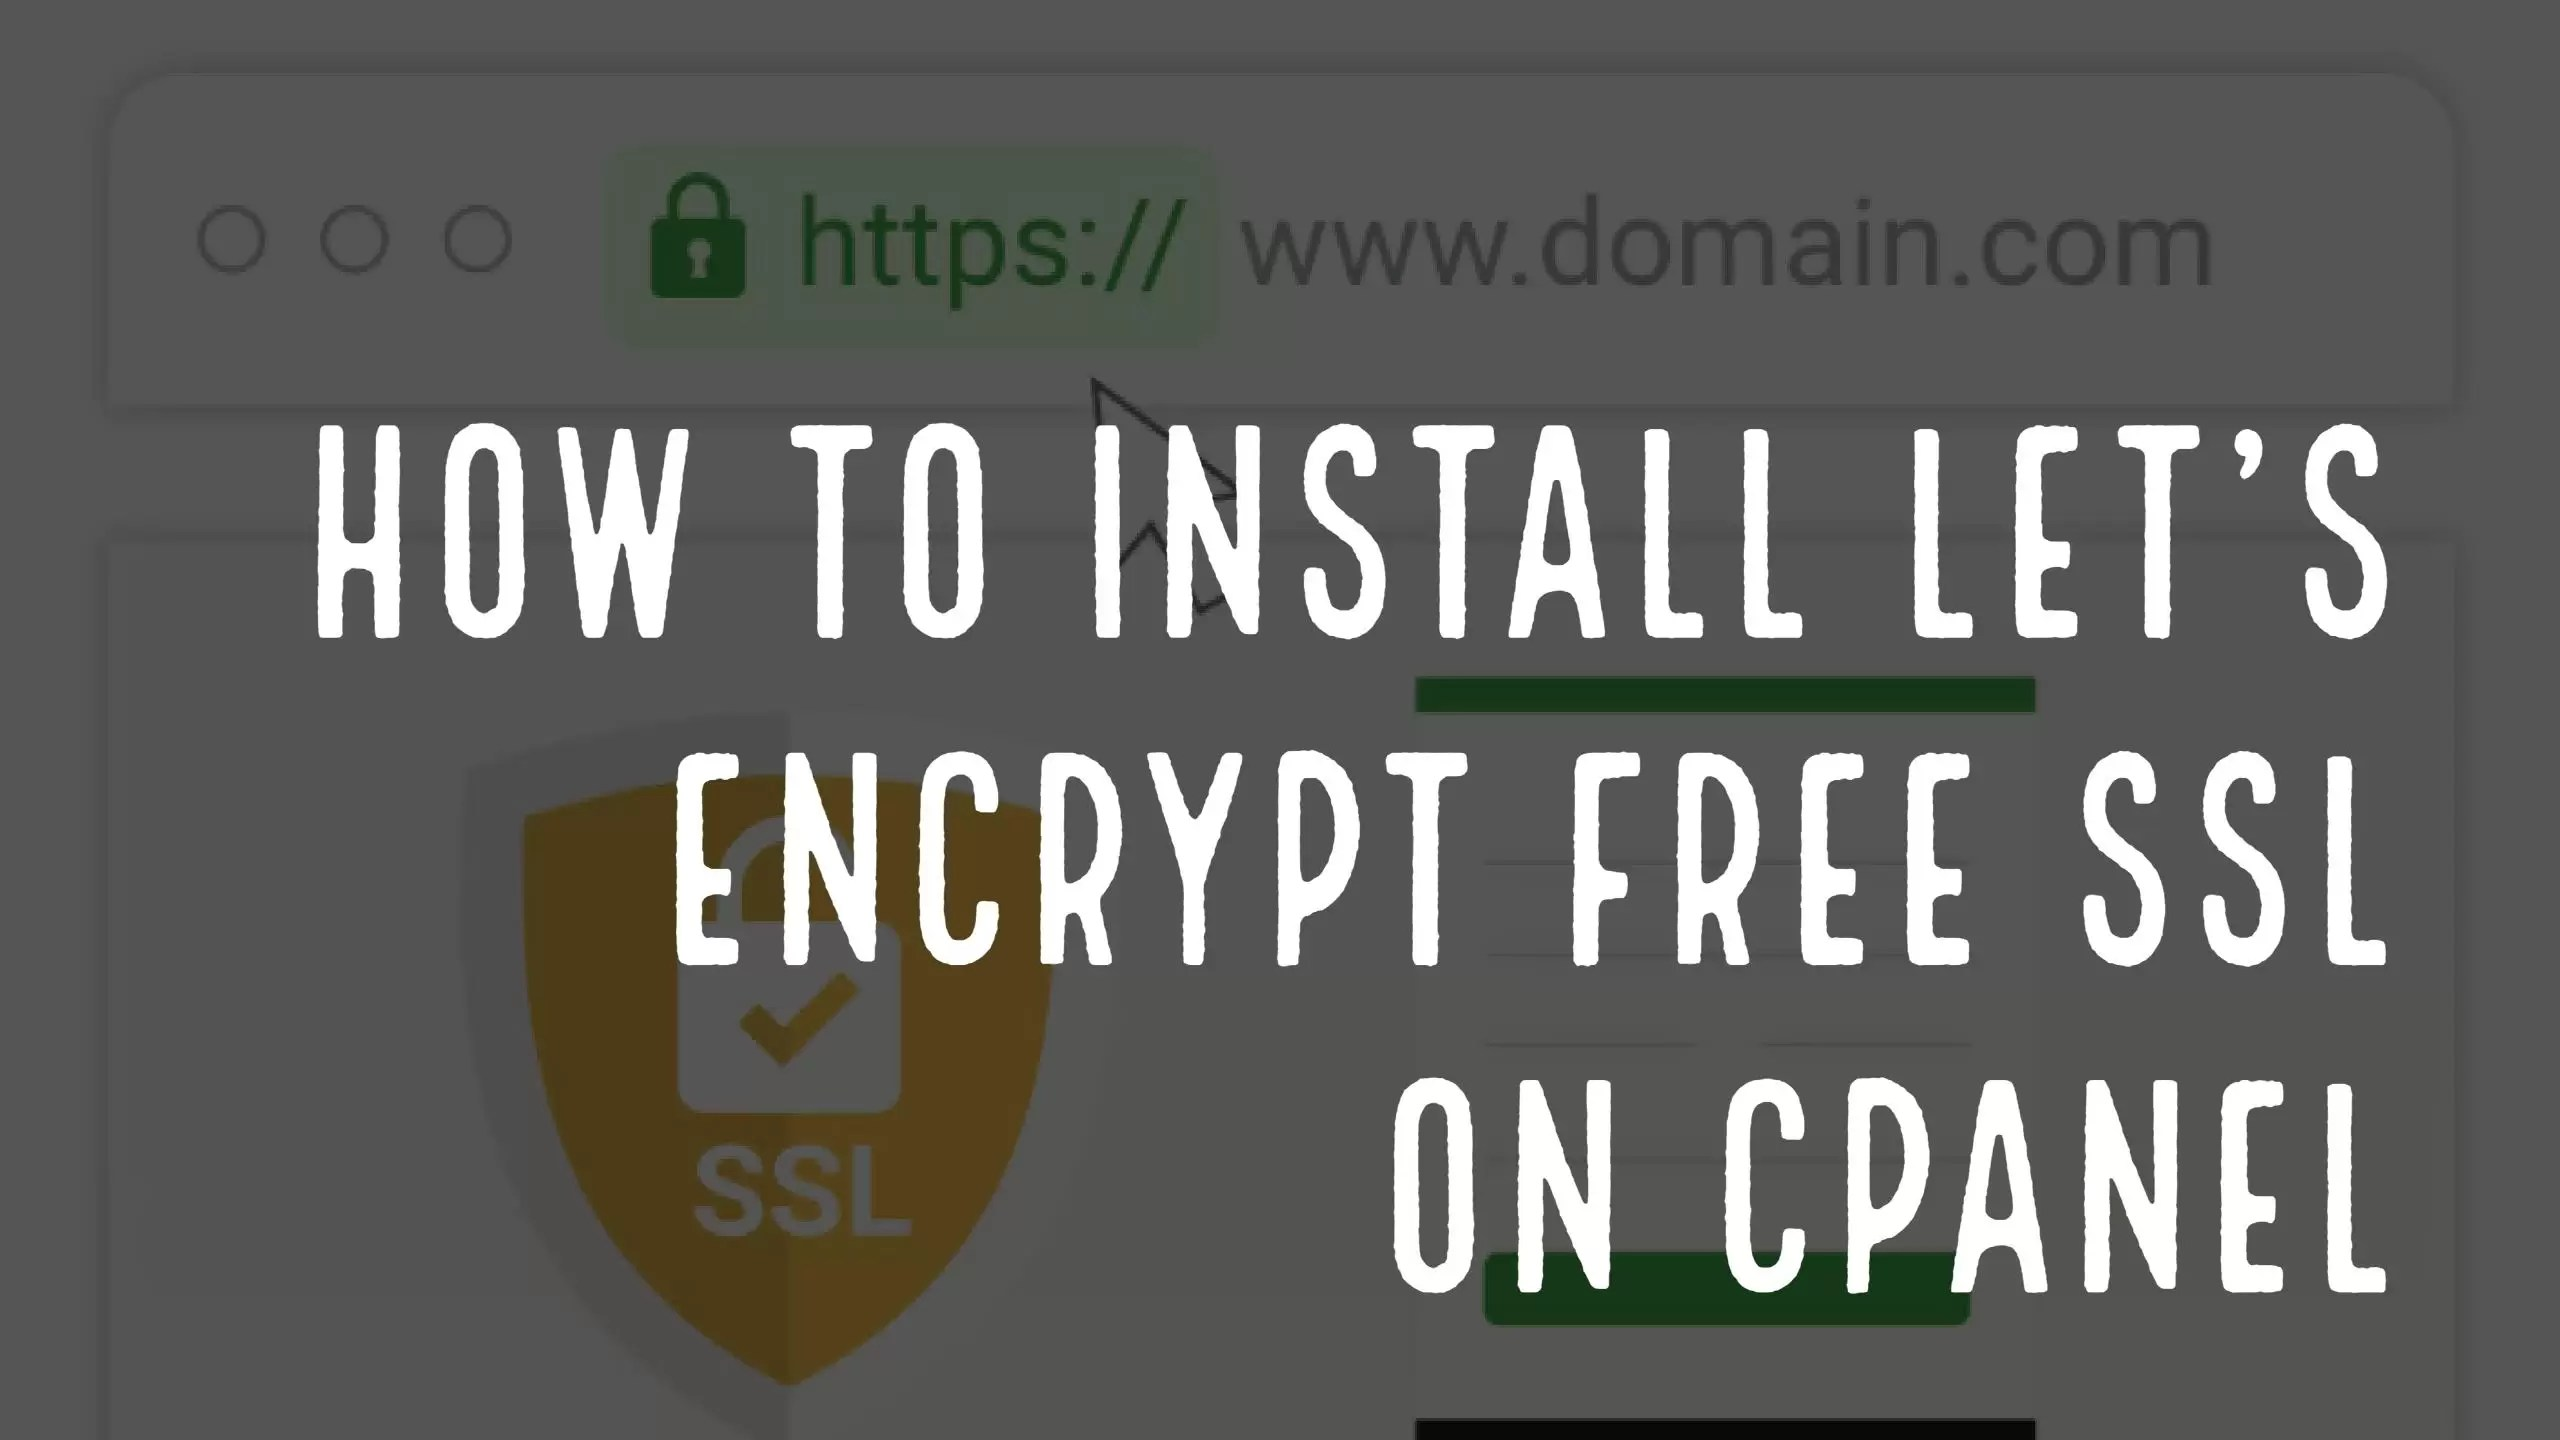 How to install lets encrypt free ssl on cpanel hosting how to install lets encrypt free ssl on cpanel hosting hostkarle blog 1betcityfo Image collections